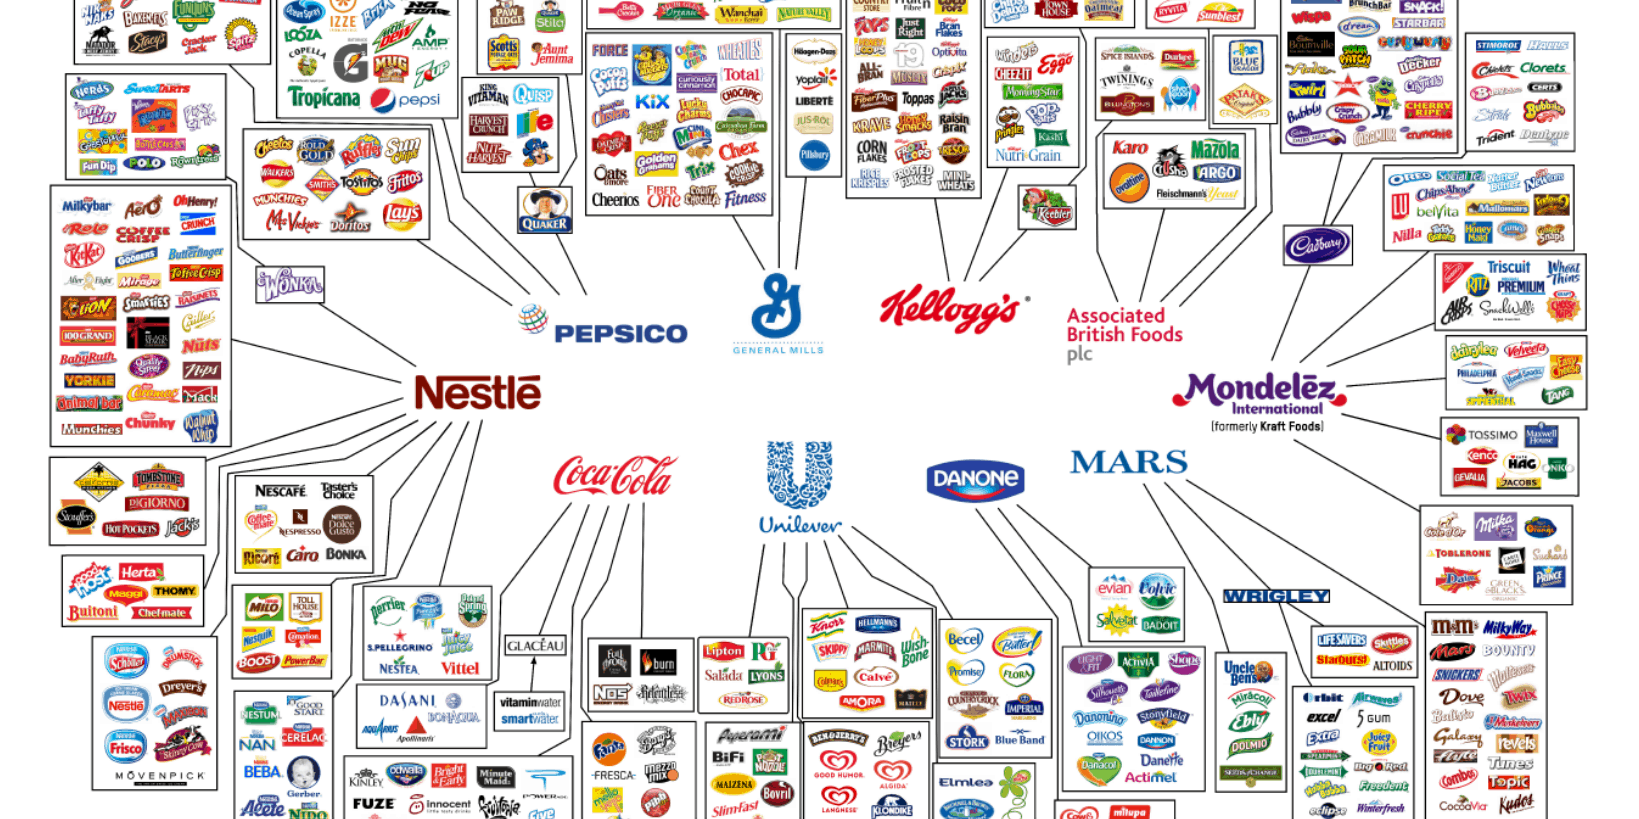 10 companies controlling most of the world's food supply